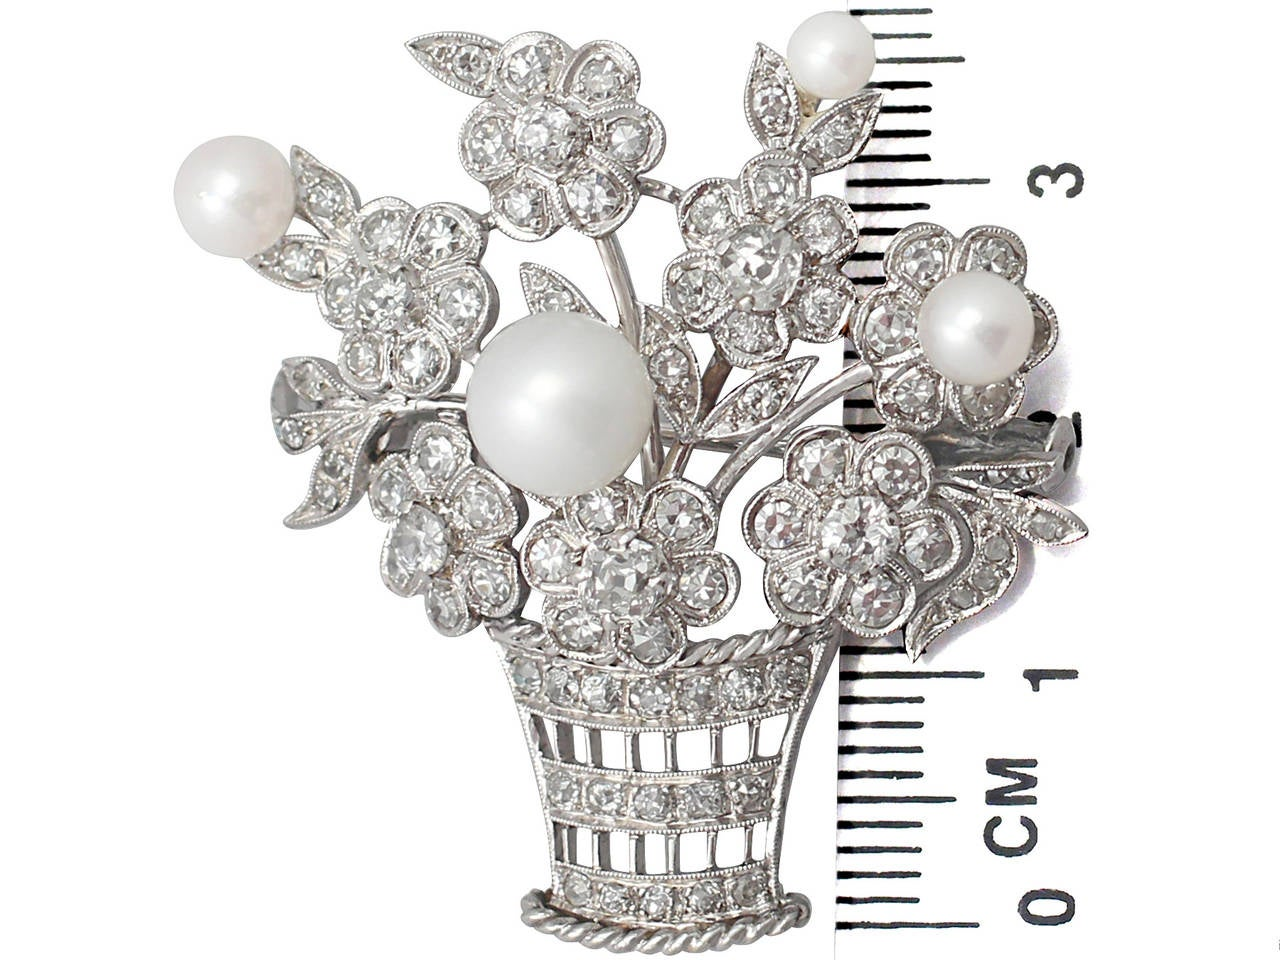 2.81Ct Diamond and Pearl, 14k White Gold Brooch - Antique Circa 1900 6